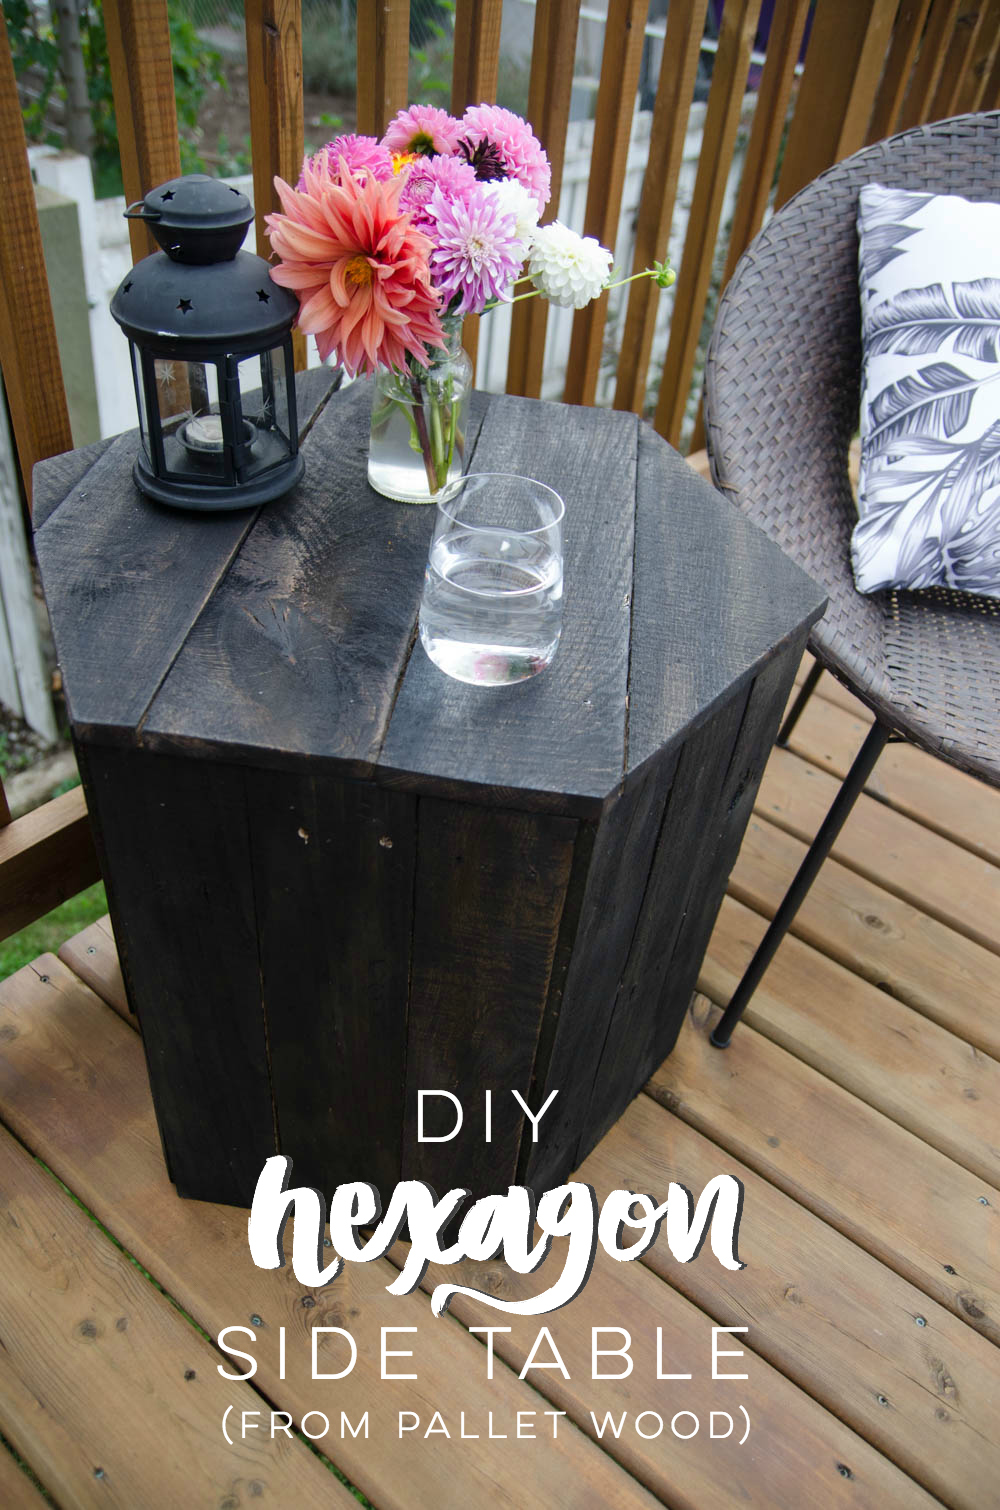 DIY Hexagon Side Table- I can't believe this is made out of pallet wood! SO nice for an afternoon build.